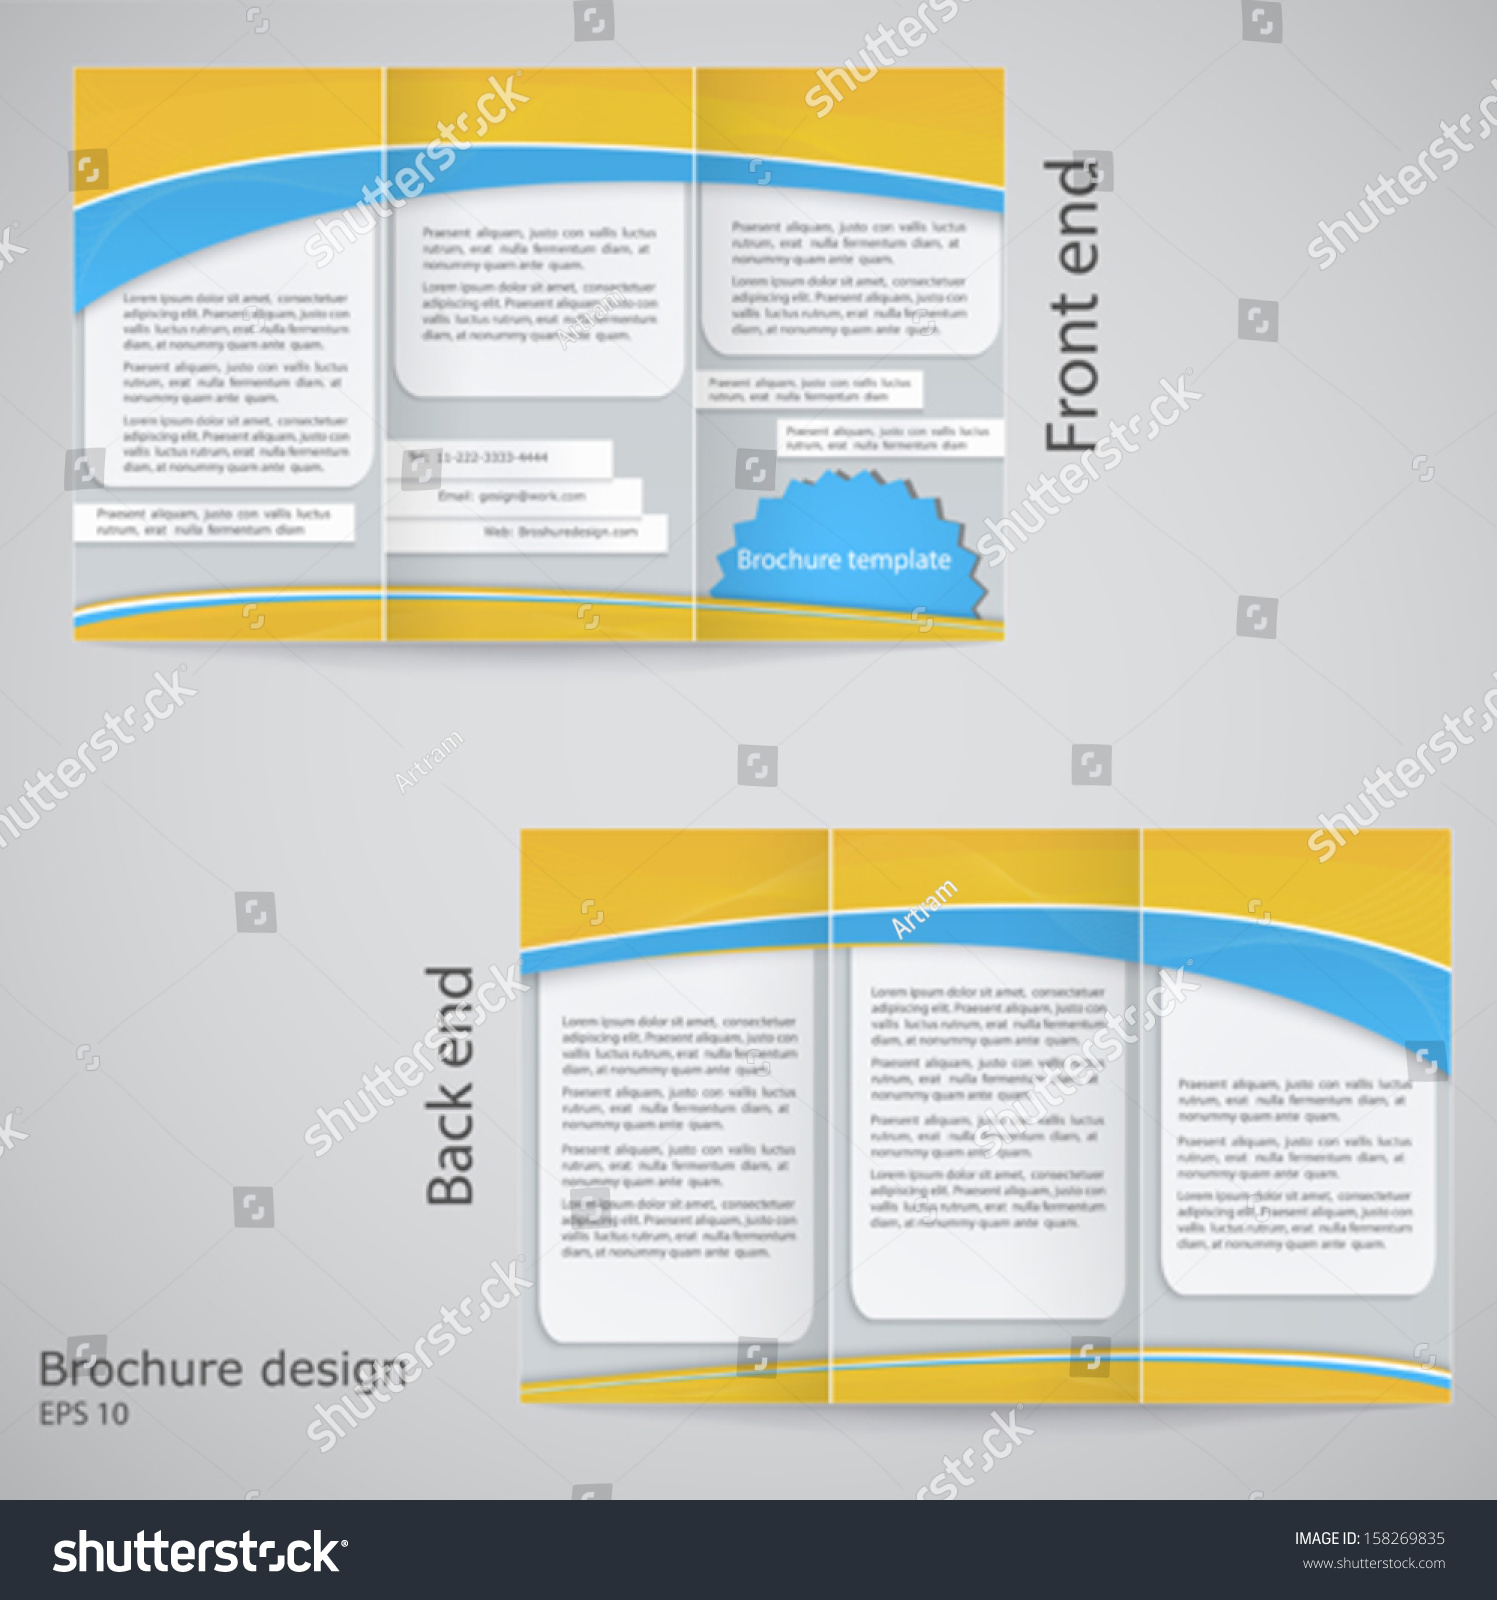 Pretty 1 2 3 Nu Opgaver Kapitel Resume Thin 1 Page Resume Templates Solid 1 Week Calendar Template 1.5 Button Template Youthful 10 Best Resume Templates Brown100 Chart Template Trifold Brochure Design Brochure Template Design Stock Vector ..